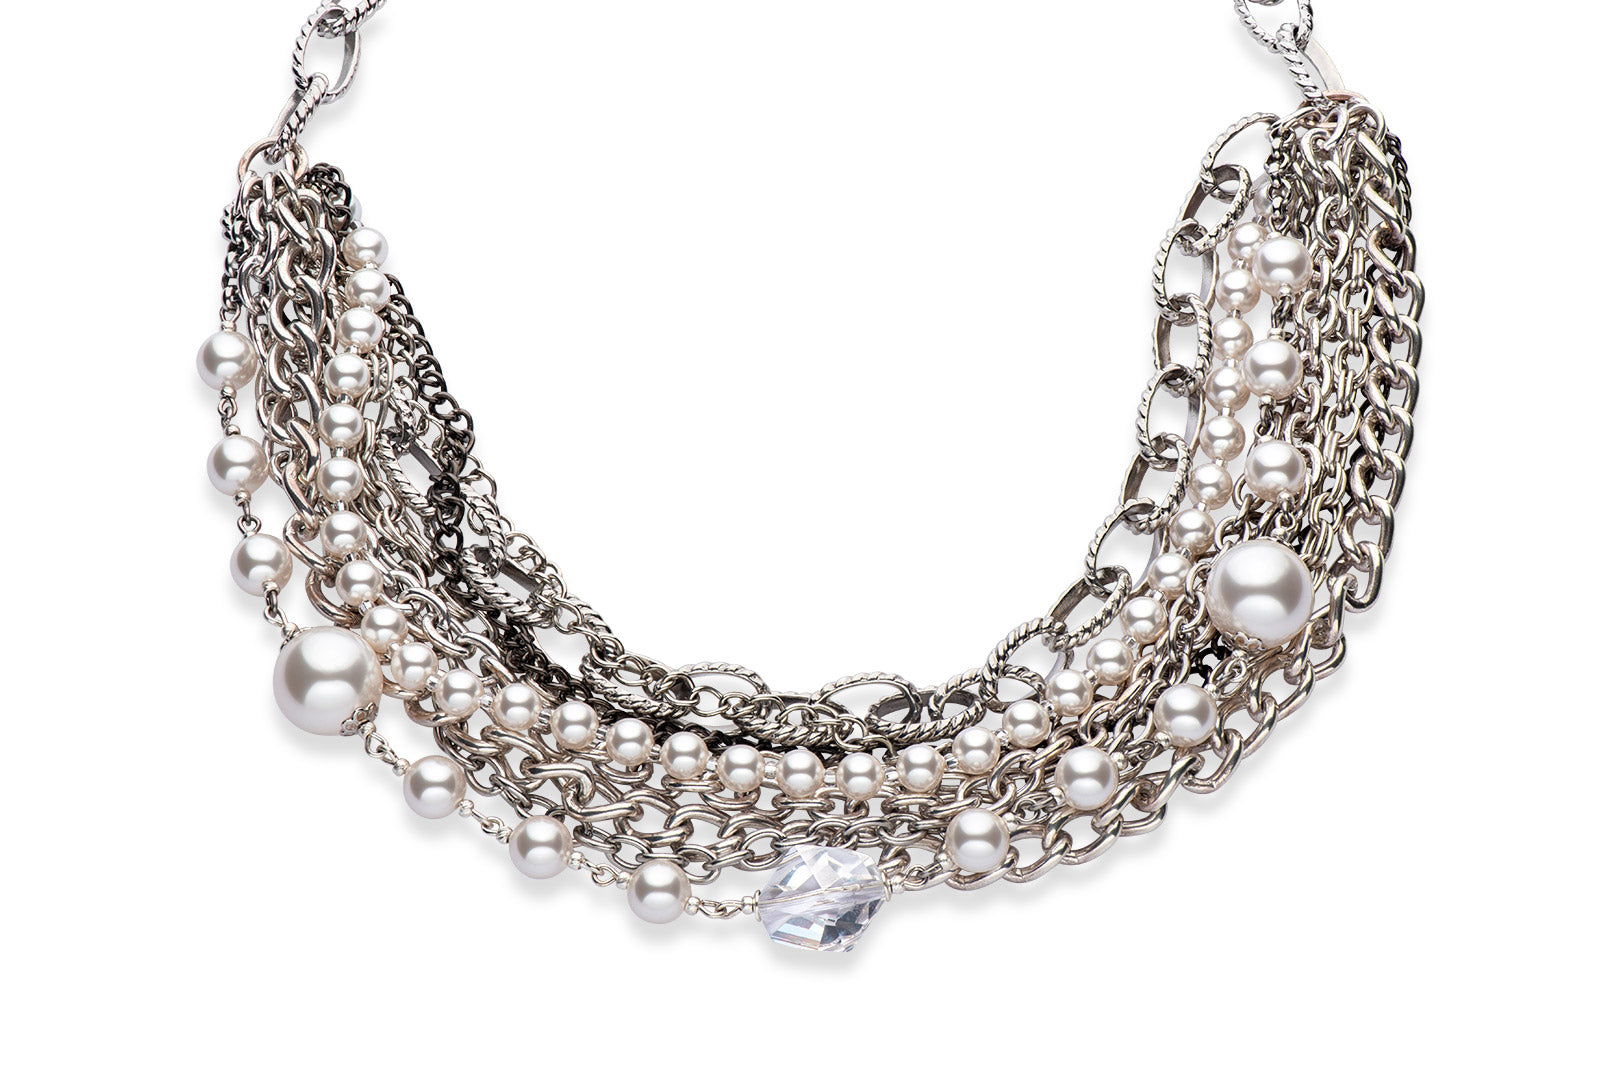 A statement necklace with multiple silver chains and Swarovski crystal pearls